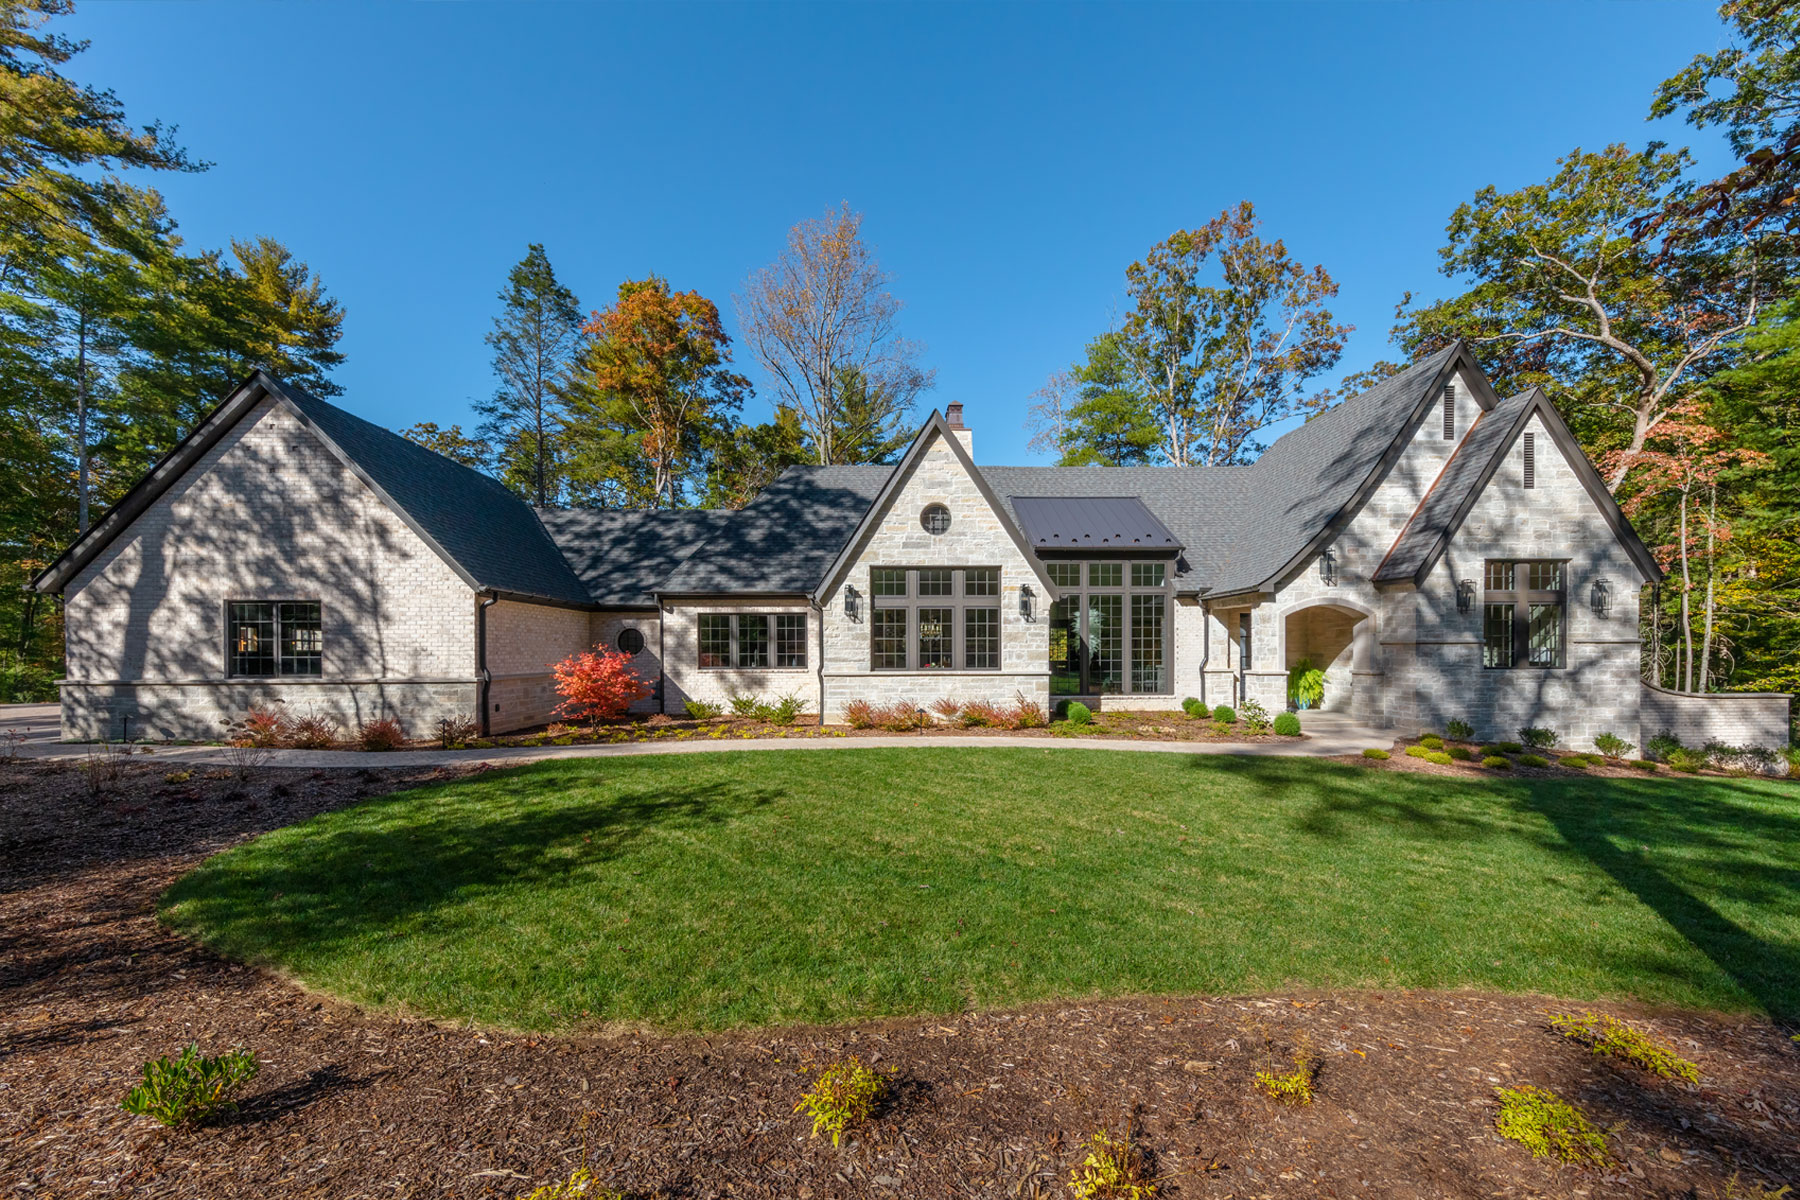 Luxury retirement home design for stone house in the mountain community of Asheville, NC